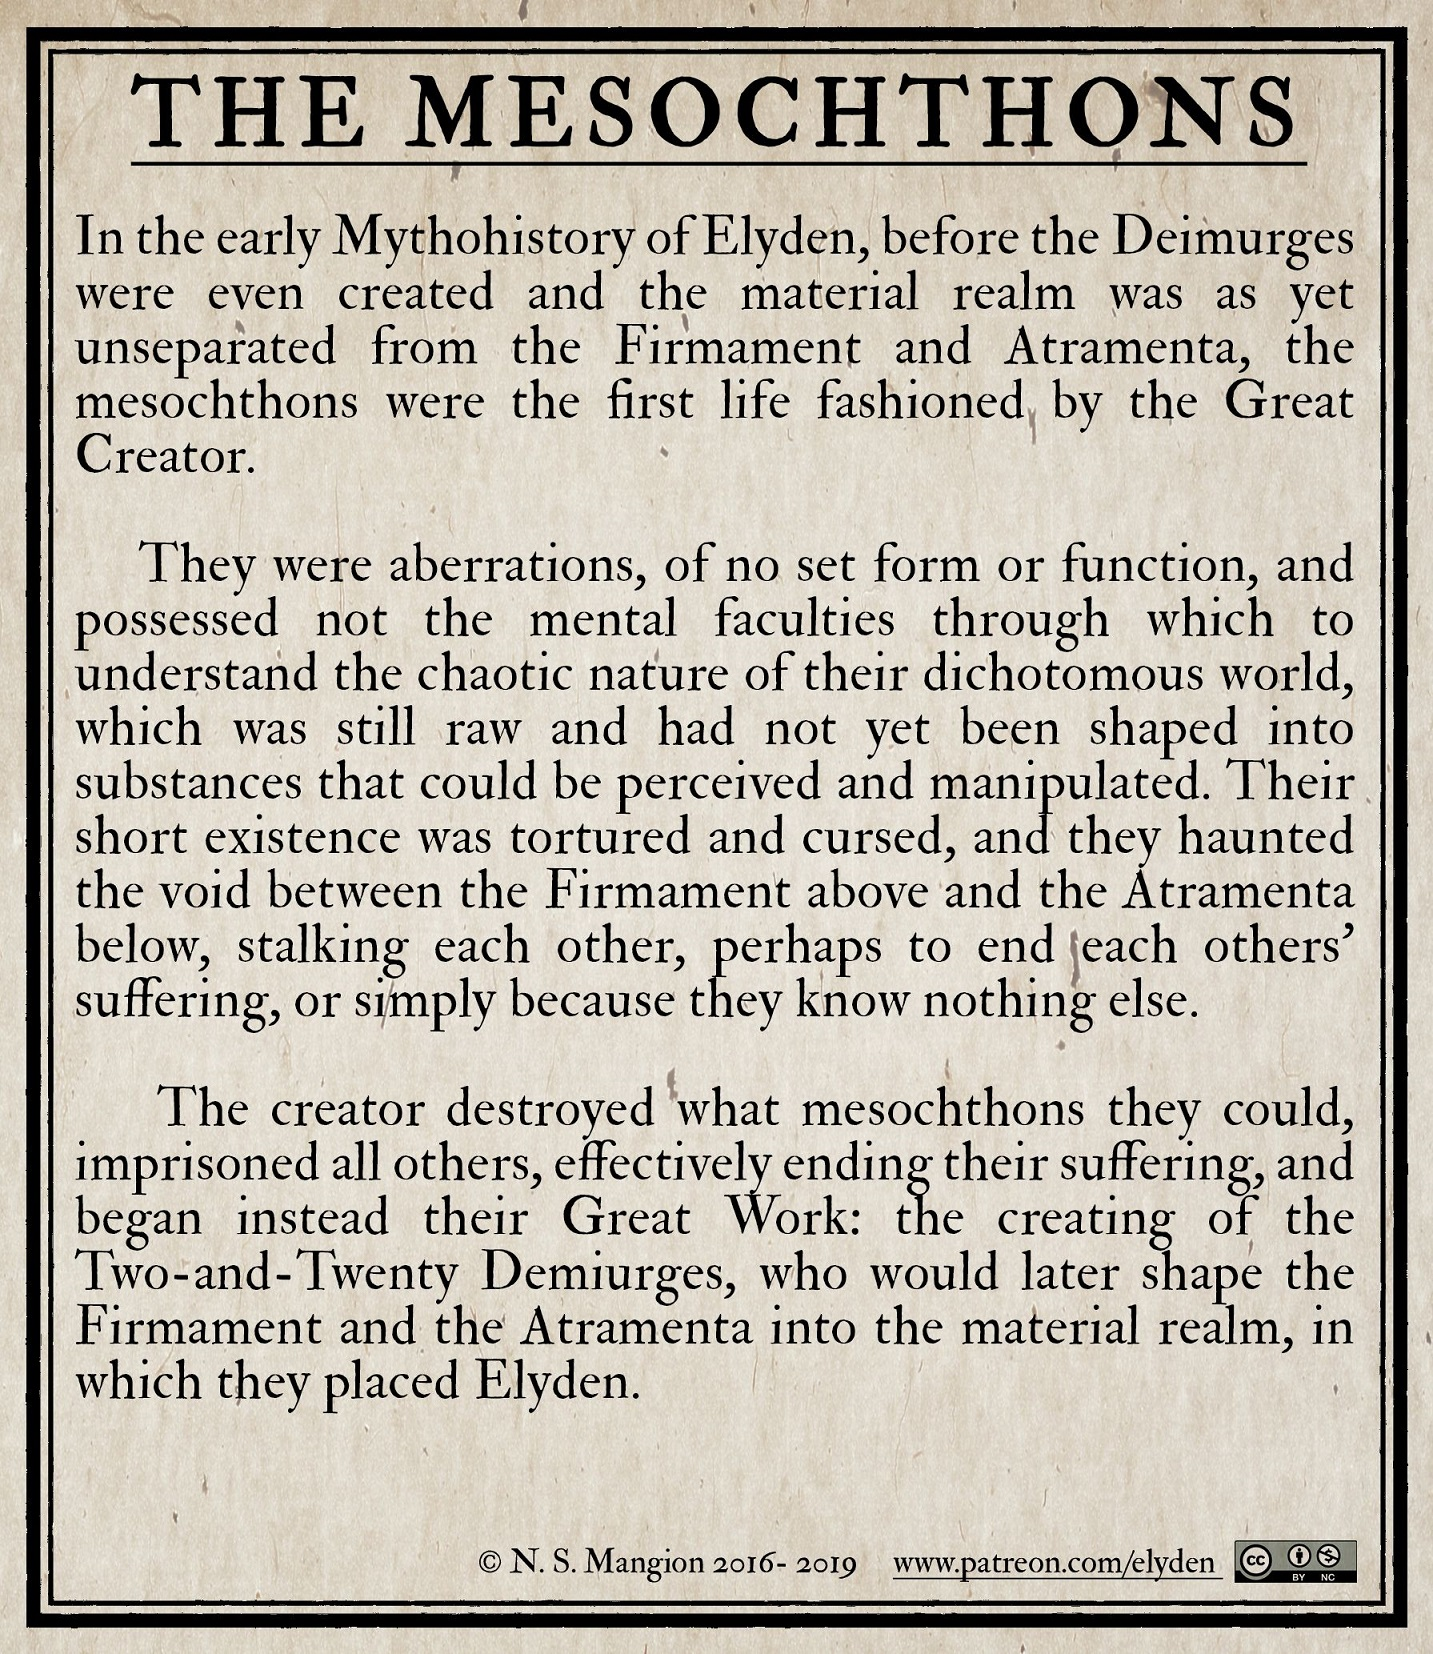 the Mesochthons